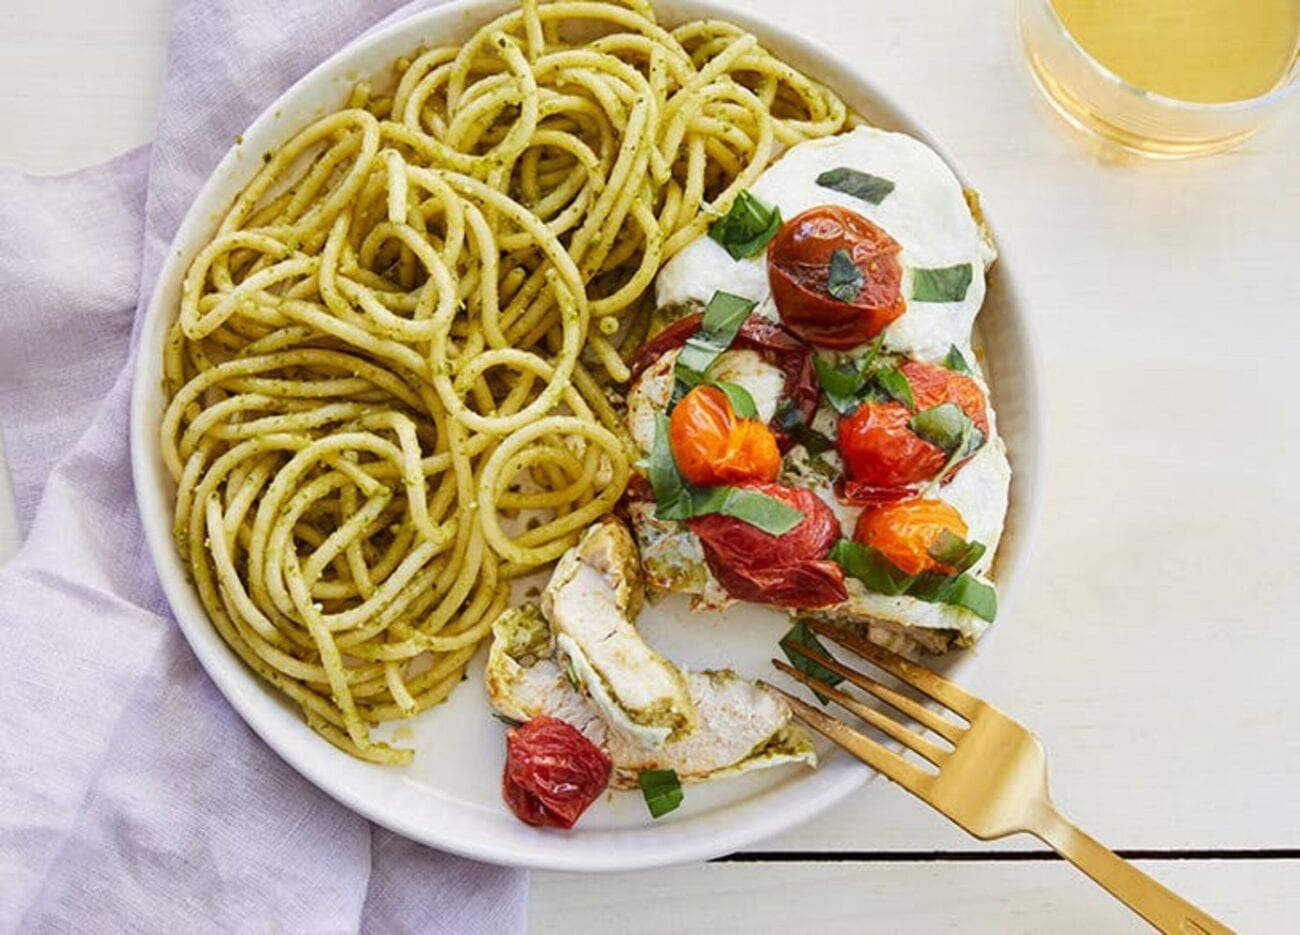 Wanna add some pizzazz to your dinner but you're not a chef? And you don't have a lot of time? We've found the easiest, tastiest recipes for a quick dinner.